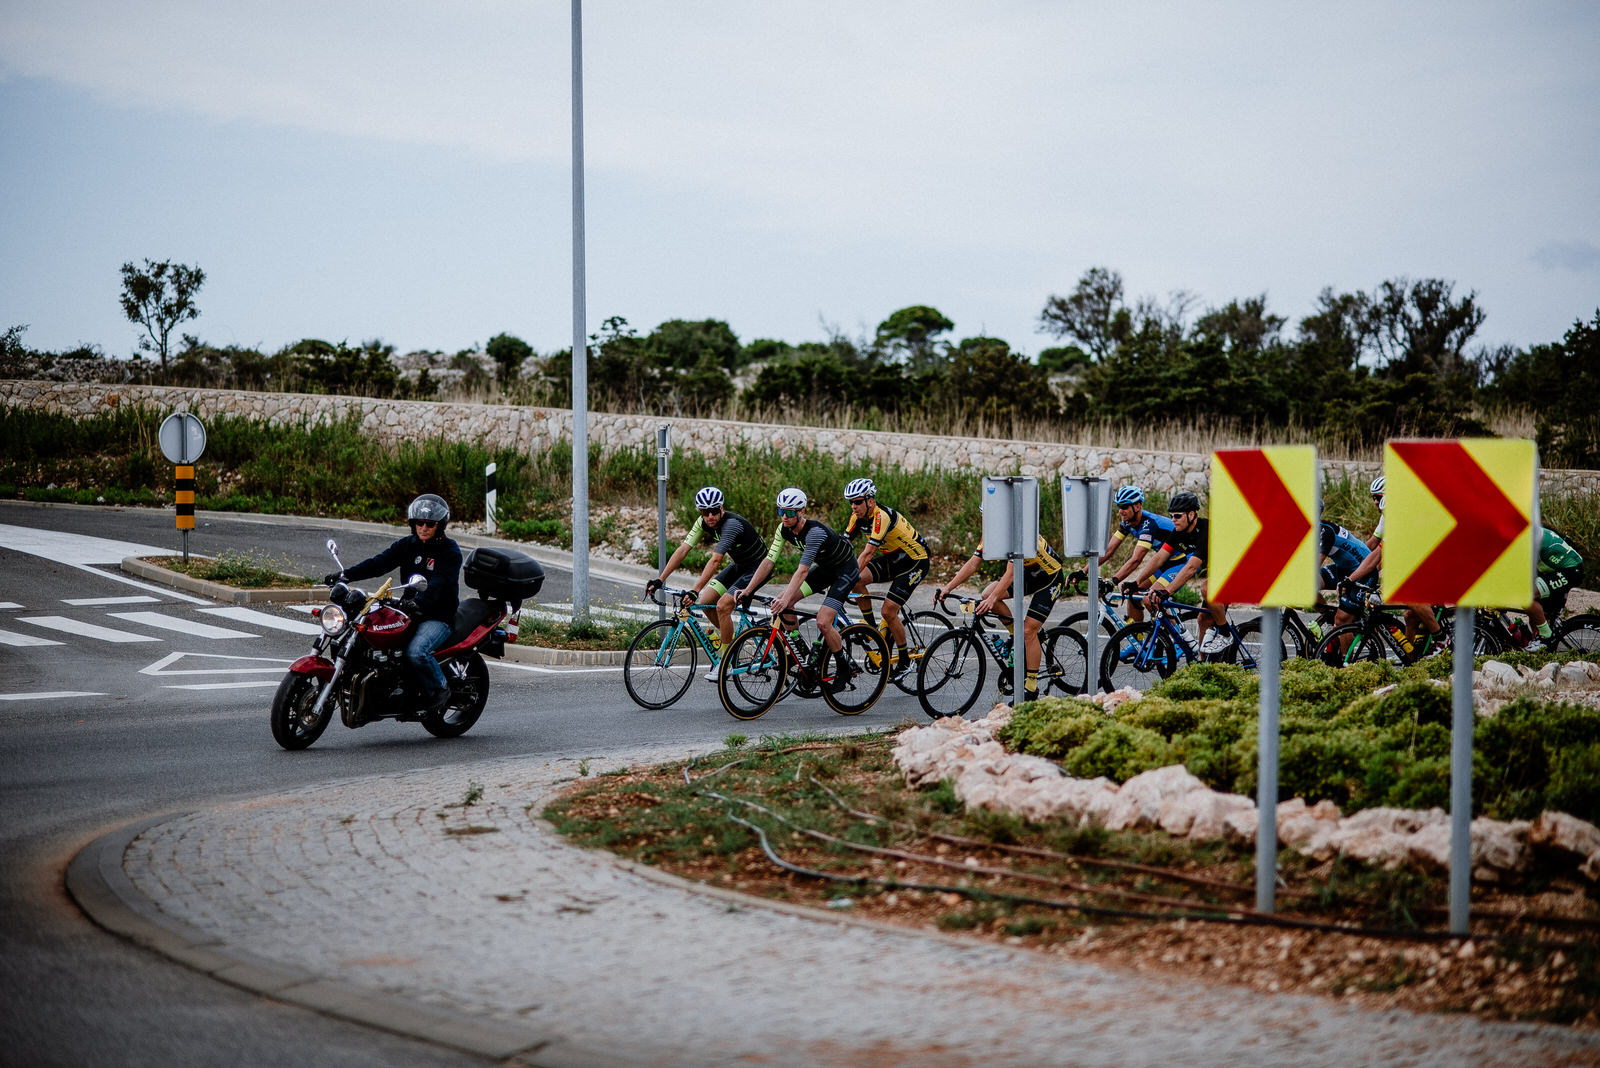 likaclub_Granfondo-Pag-–-Cycling-on-the-Moon_2019-3